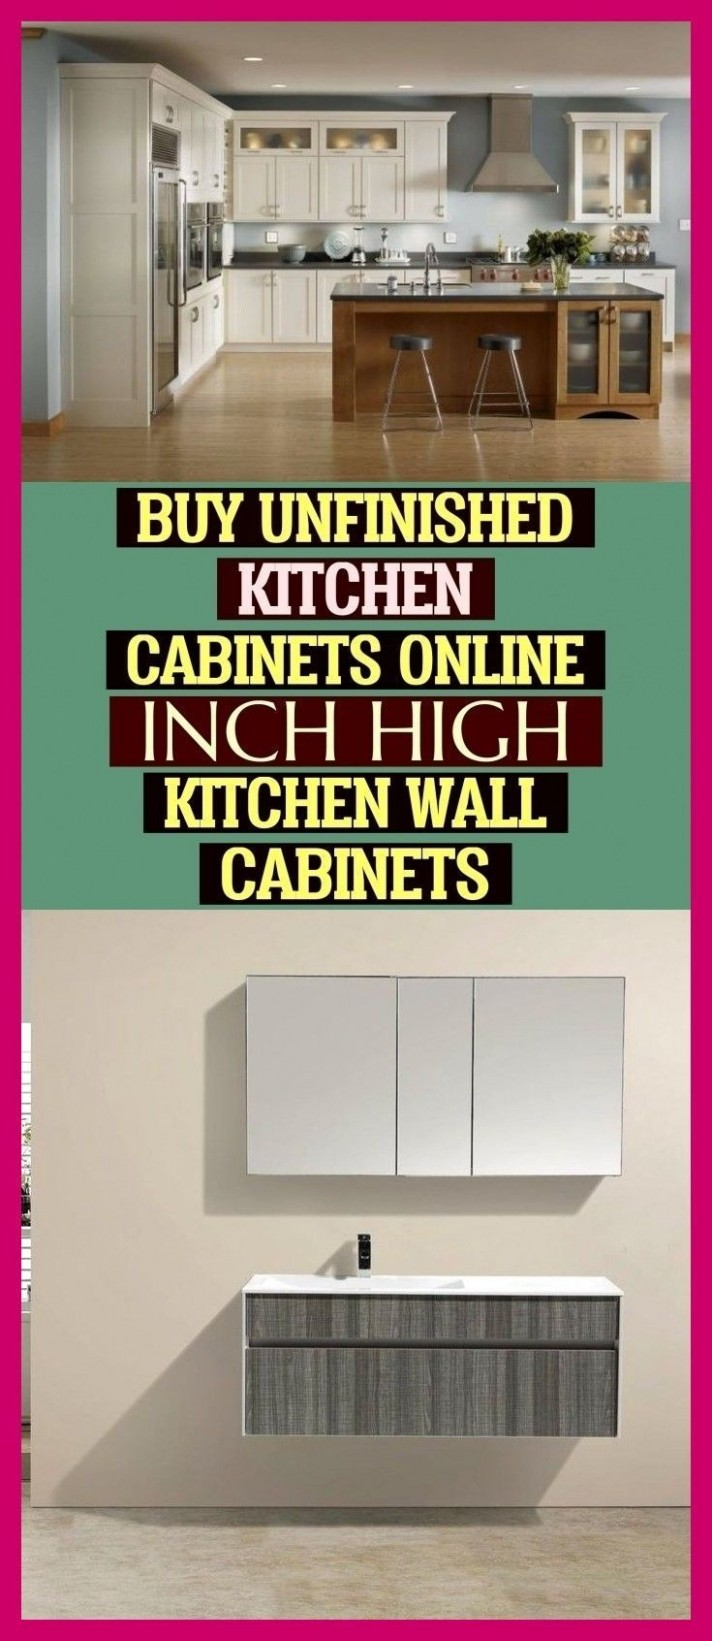 Buy Unfinished Kitchen Cabinets Online Inch High Kitchen Wall  - Buy Kitchen Wall Cabinets Online